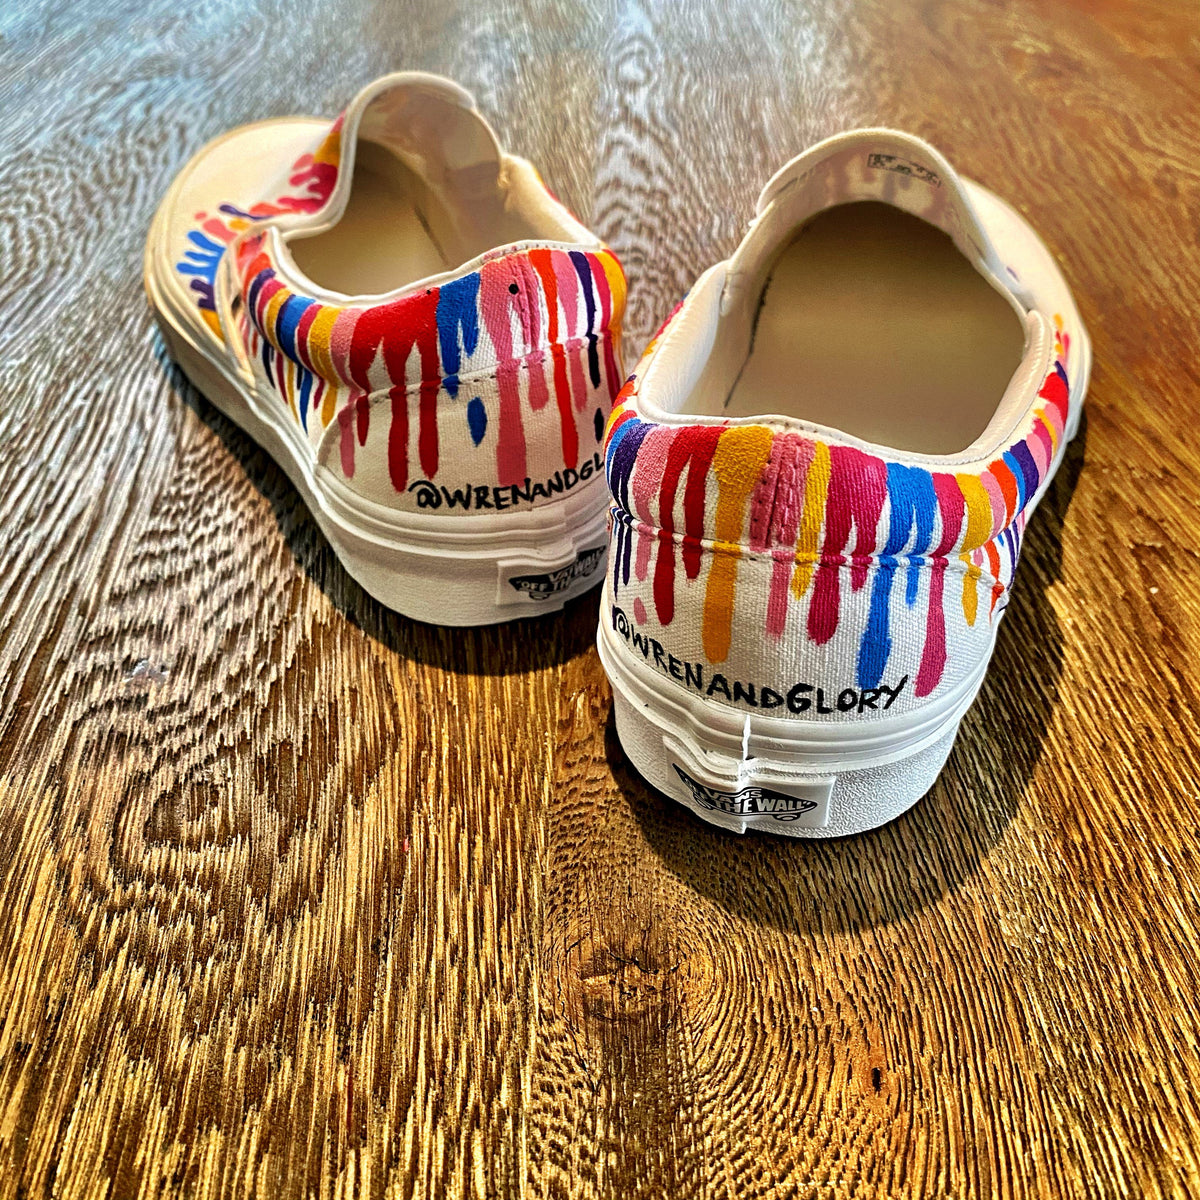 Painted on White Vans Classic Slip-On Assorted colors painted in heavy drip effect across entire sneaker. Signed @wrenandglory.